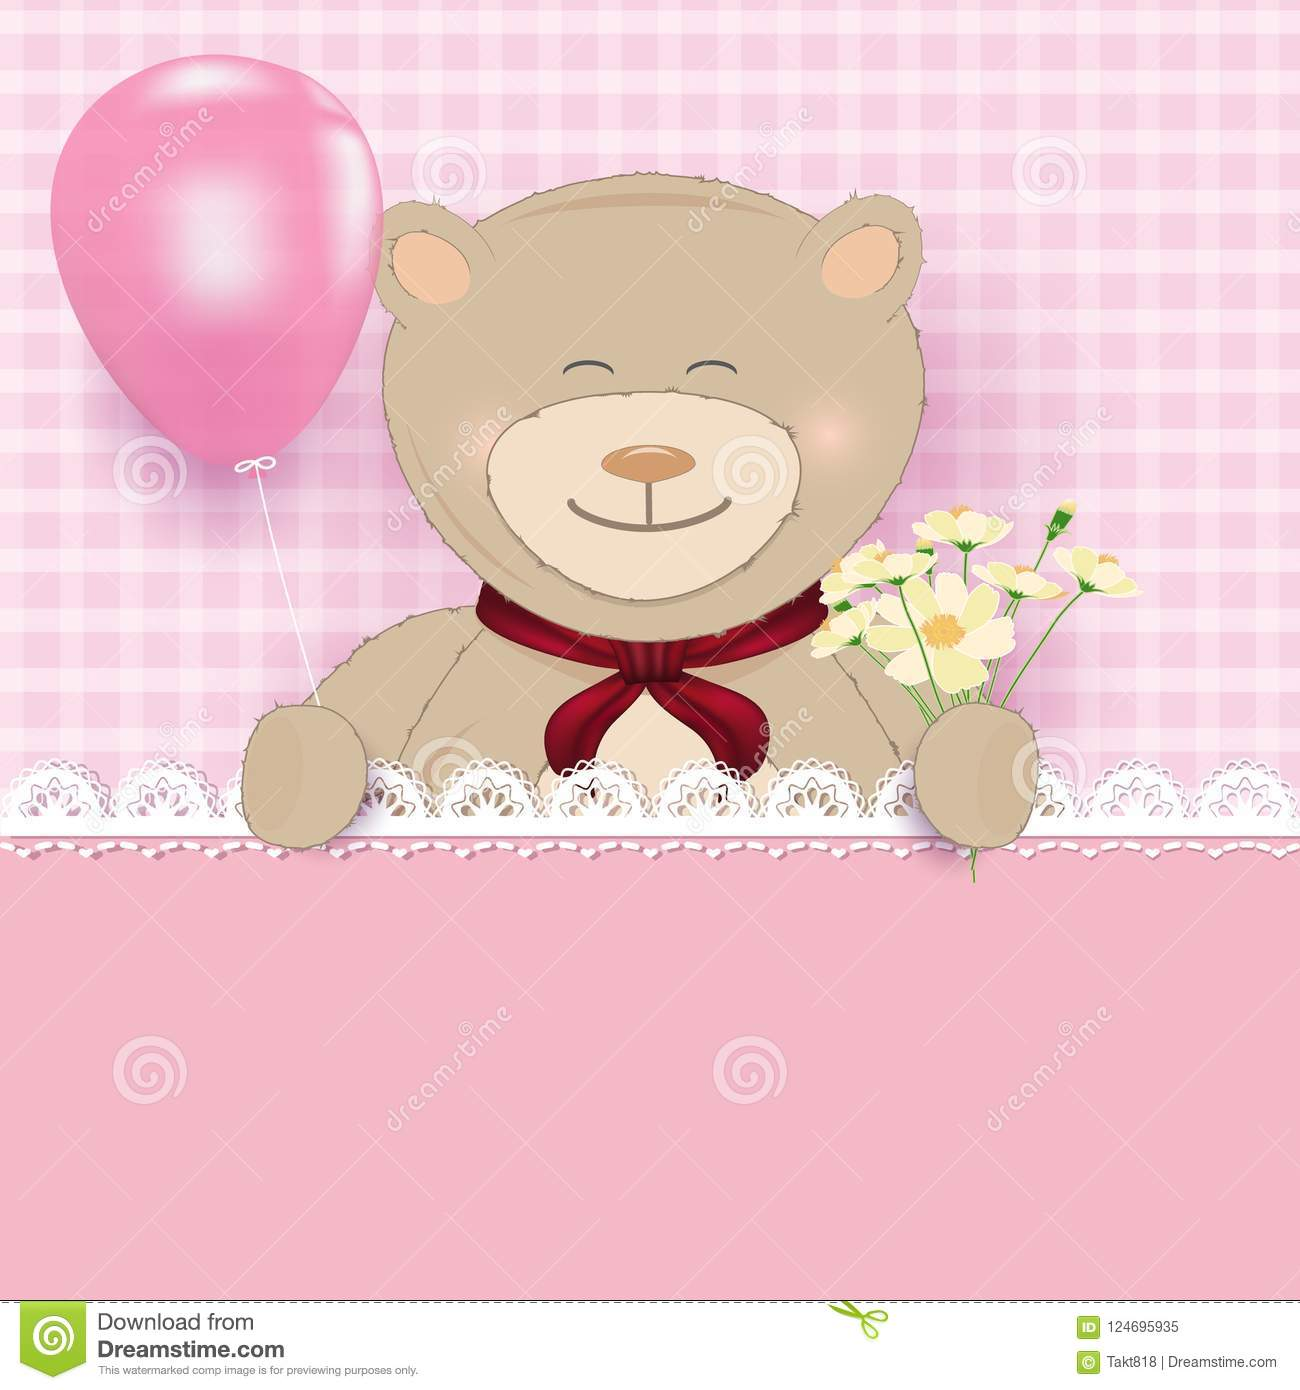 Teddy Bear Holding Balloon And Cosmos Flower On Pink Background